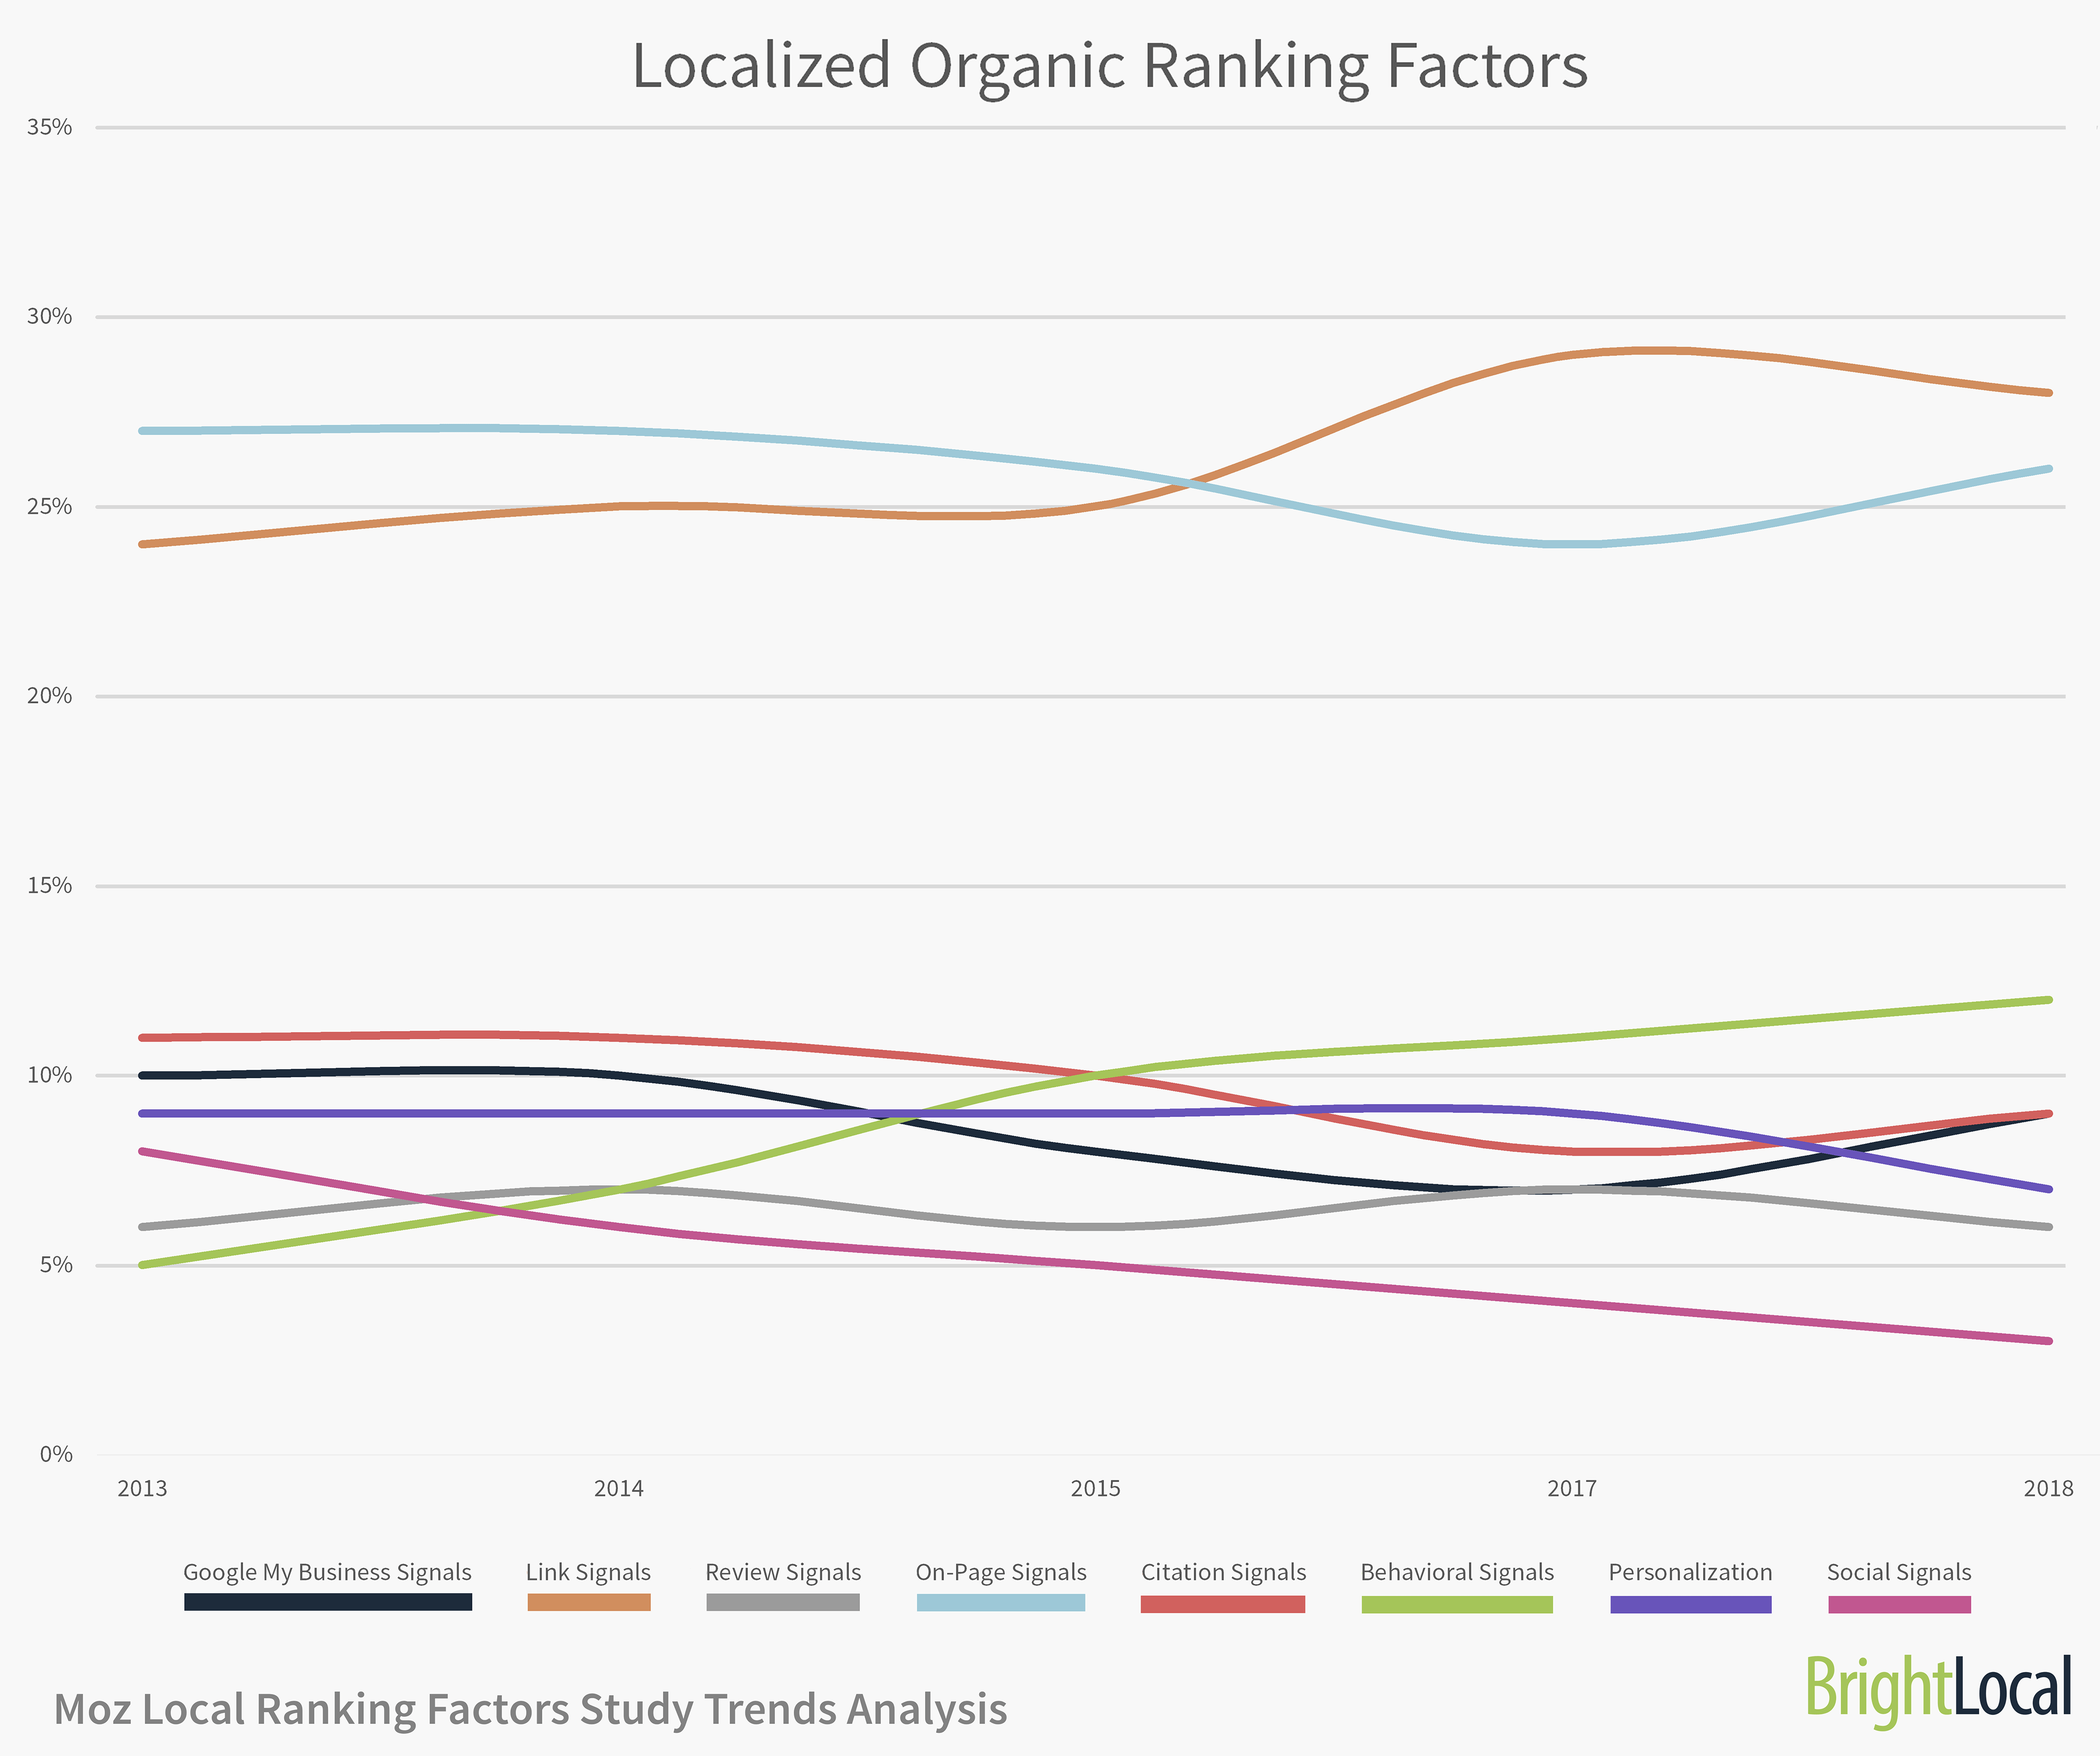 Localized Organic Ranking Factors